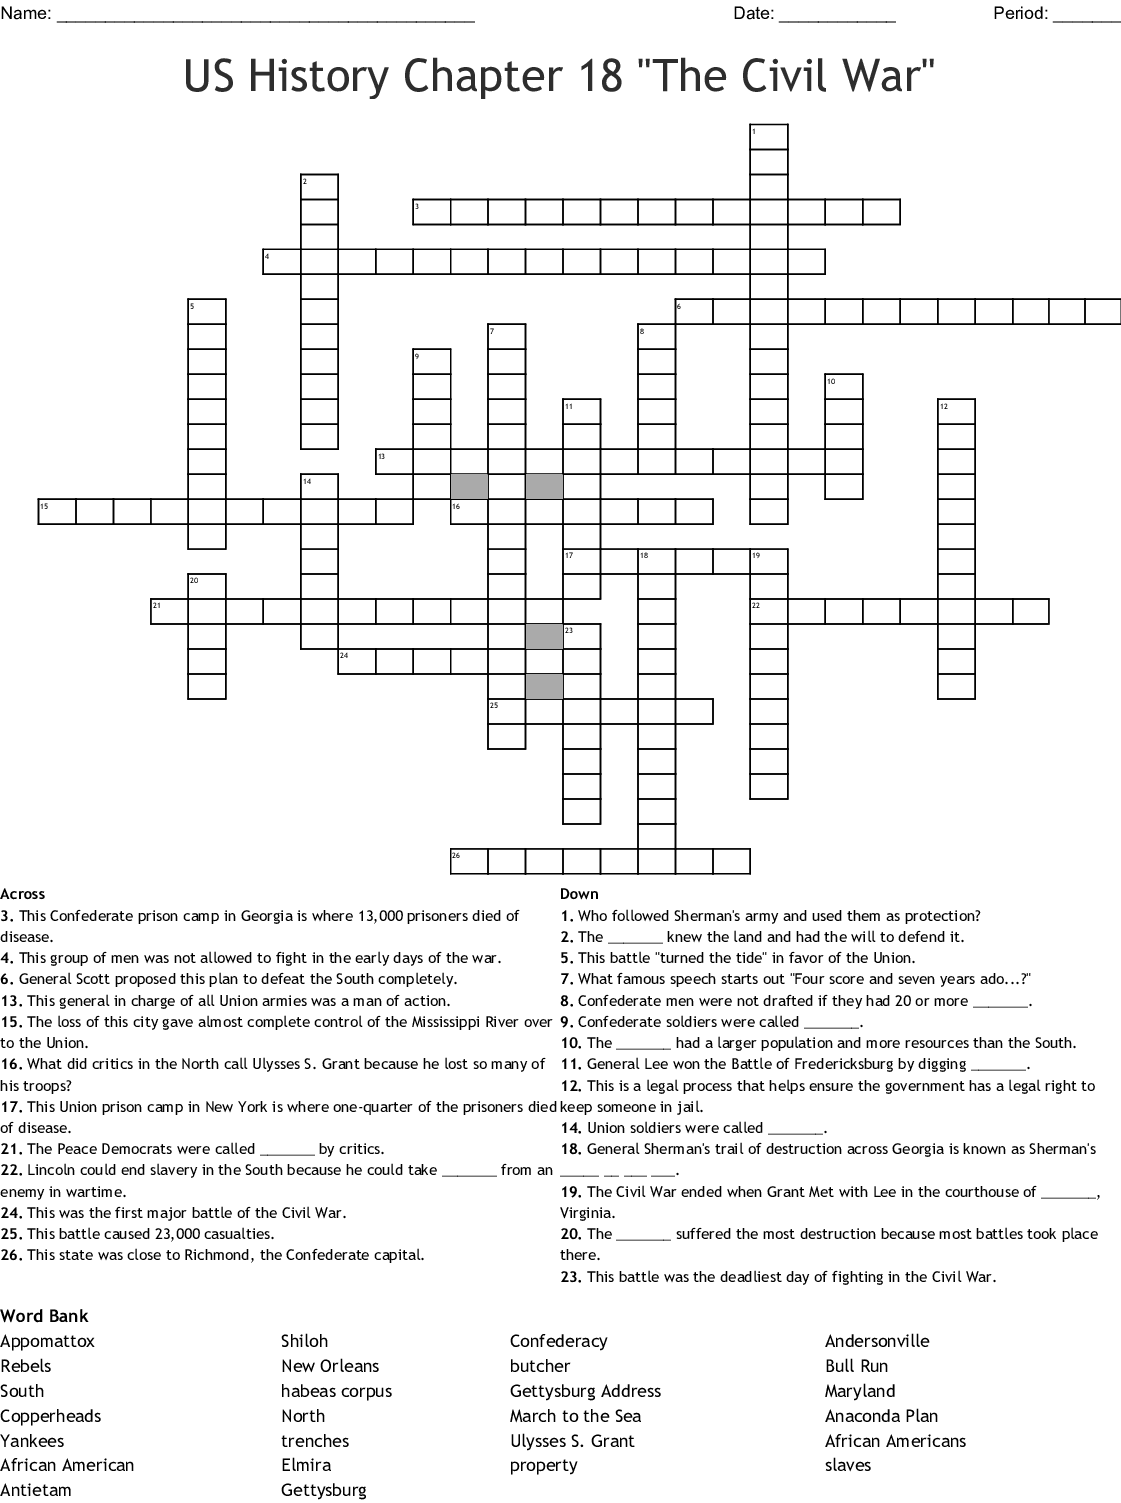 Us History Chapter 18 The Civil War Crossword